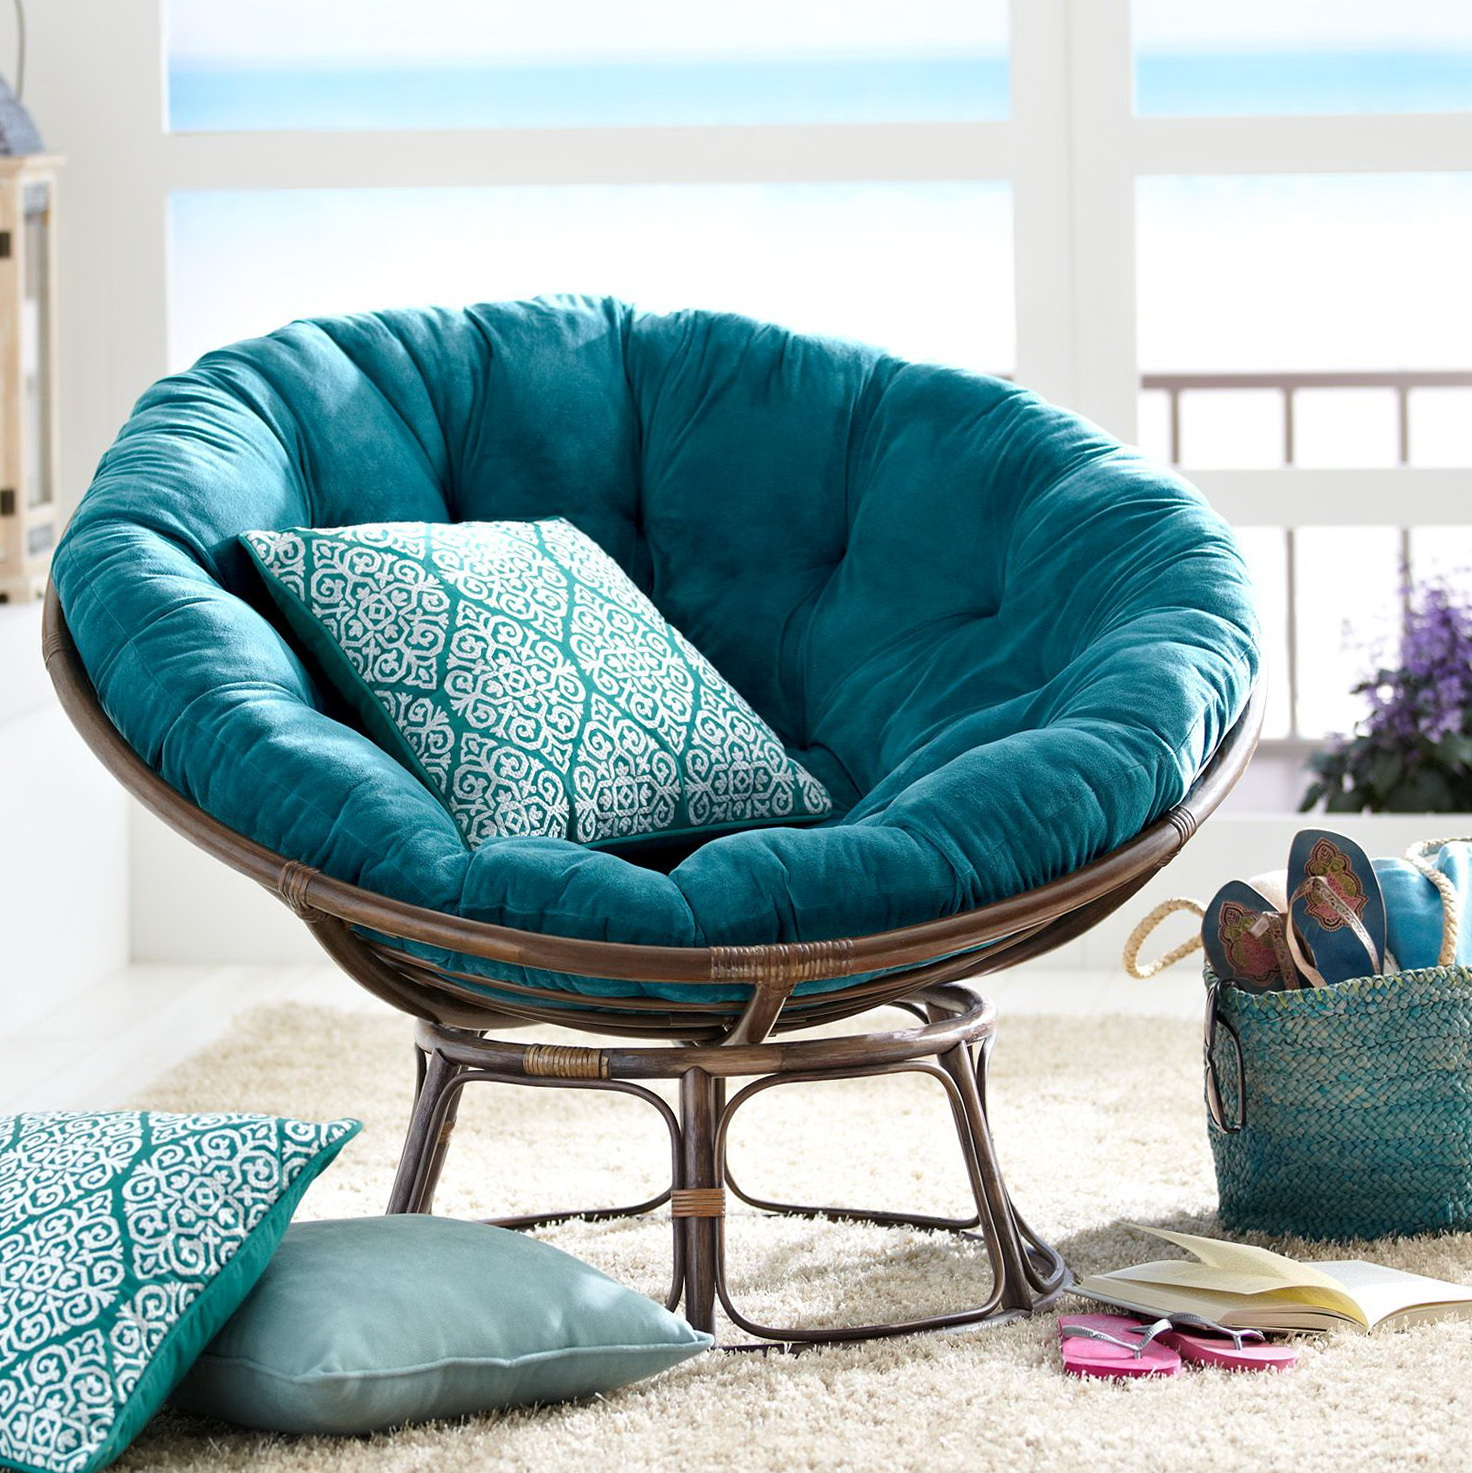 Double Papasan Cushion Pier 1 Home Design Ideas Stylish One Outdoor Seat